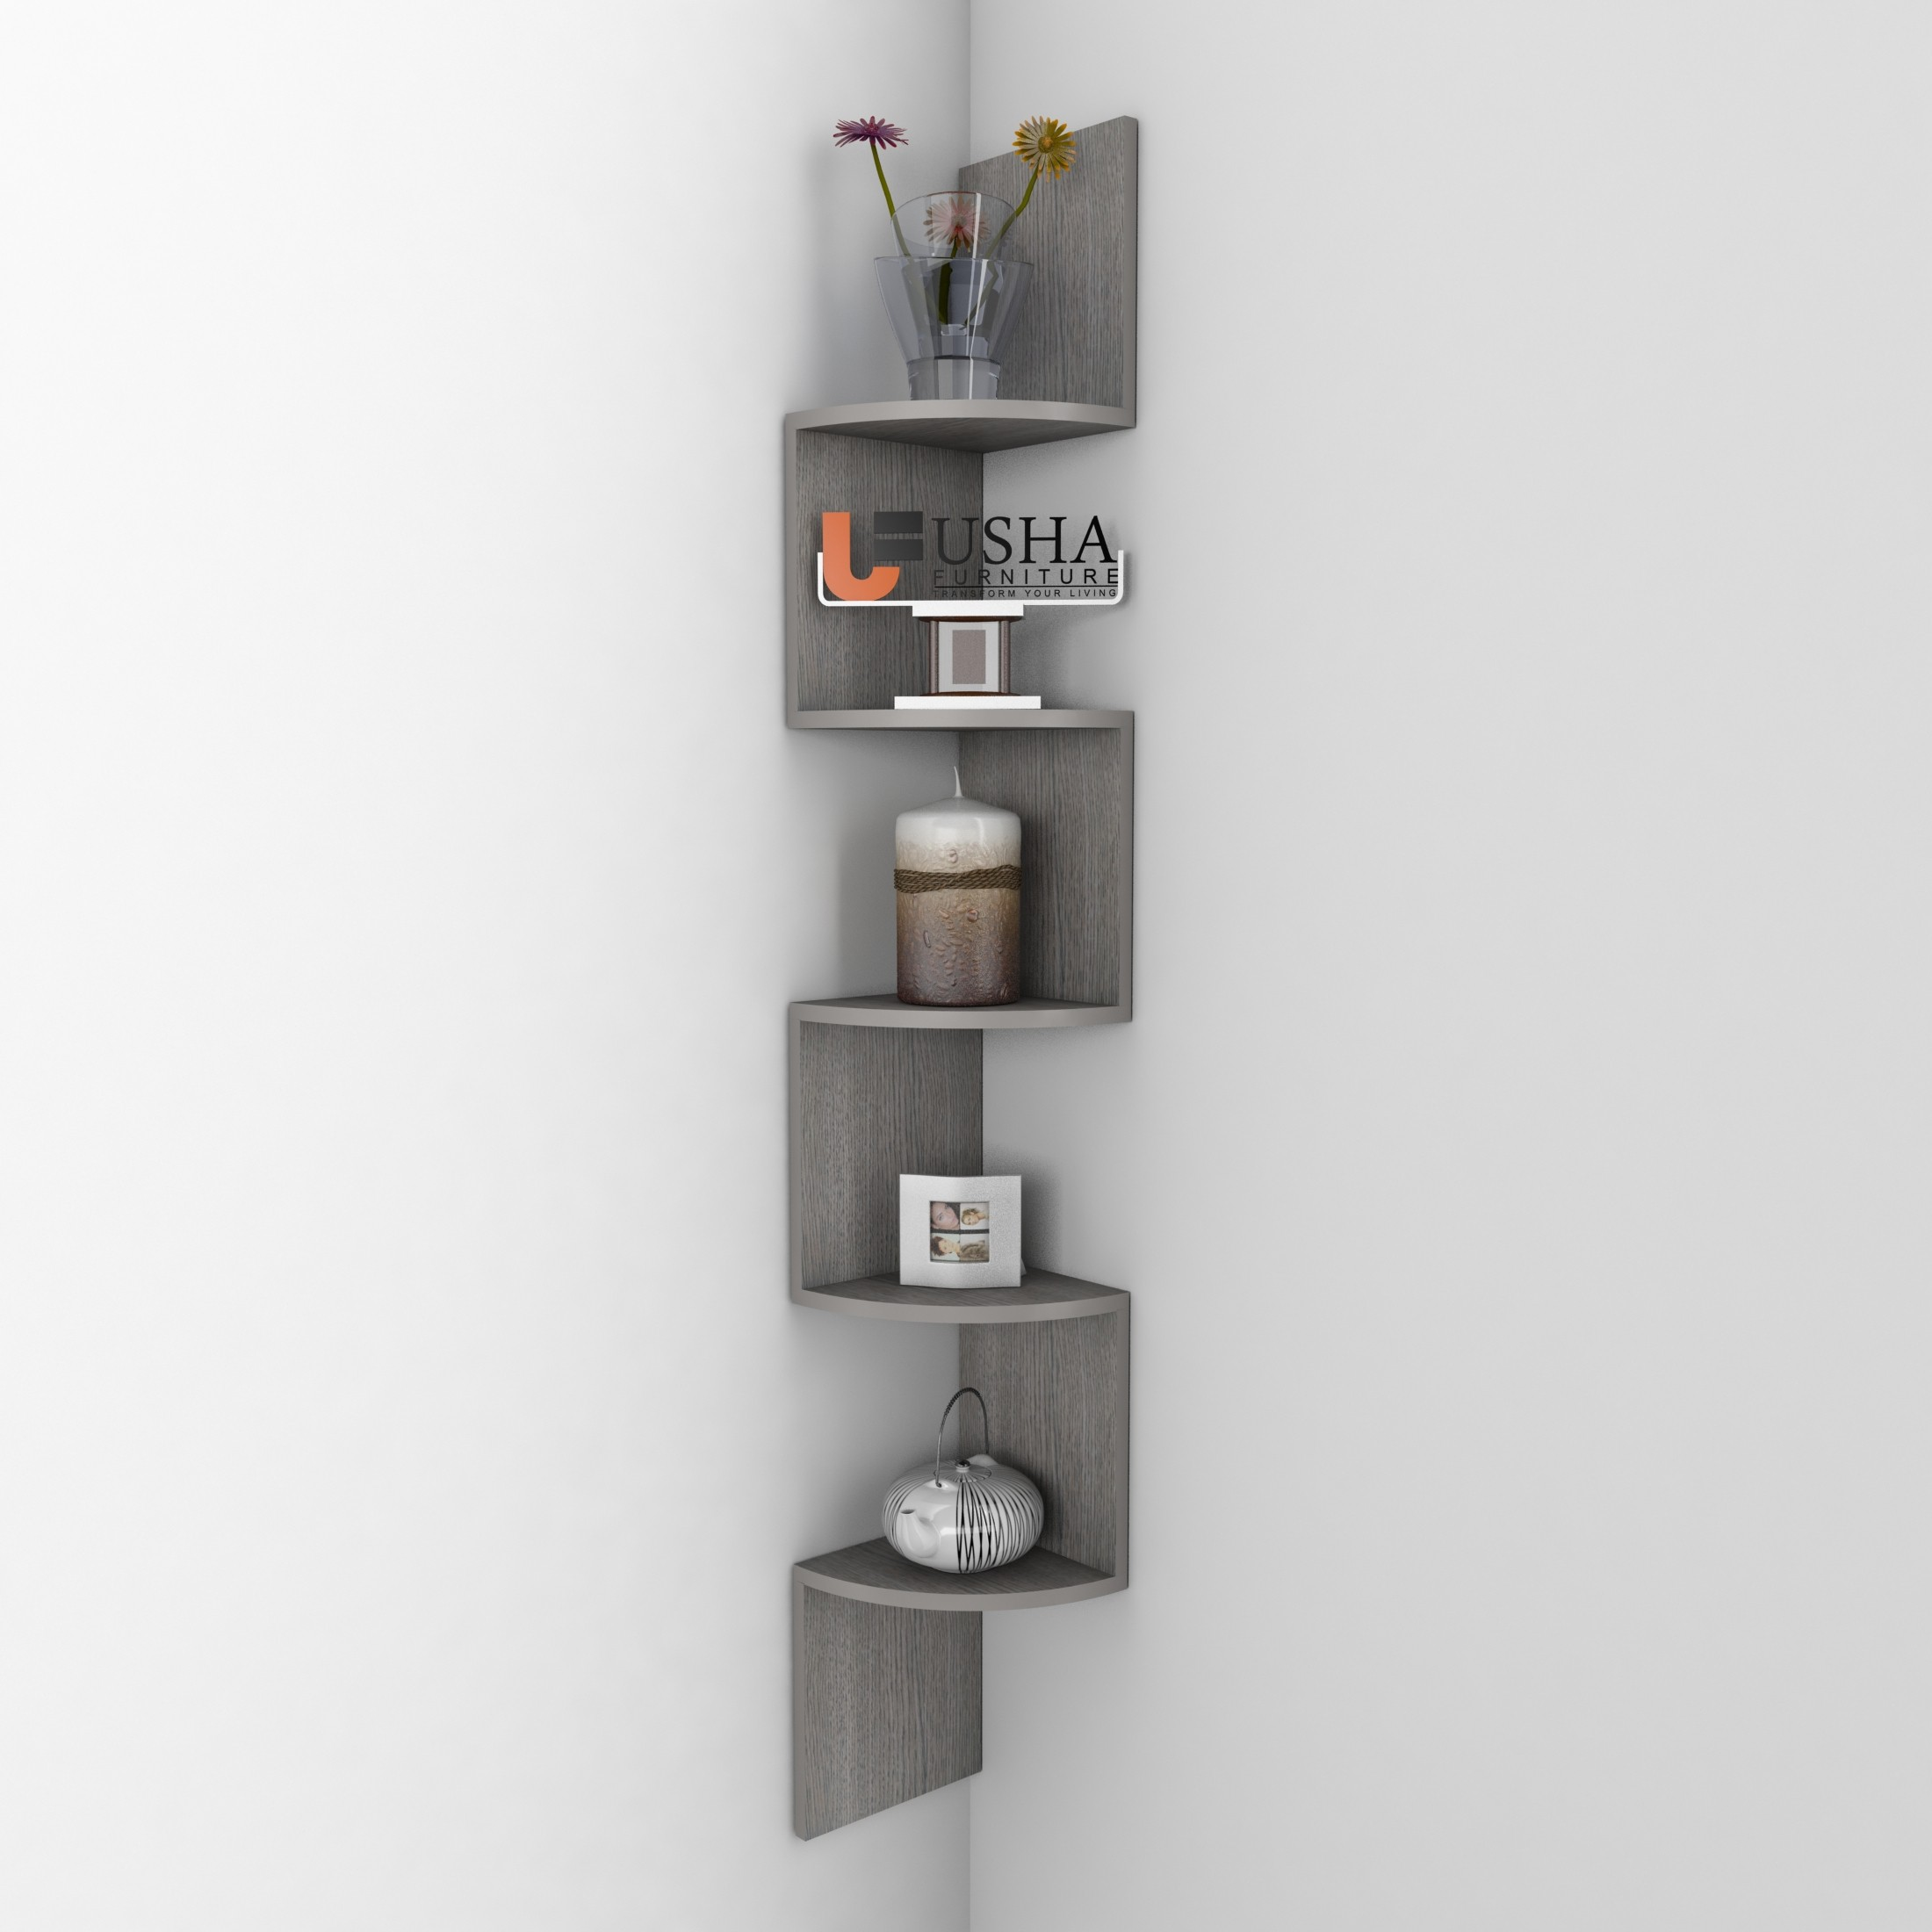 View Usha Furniture Corner Mount Wall Shelves Zigzag Shape Rack MDF Wall Shelf(Number of Shelves - 5, Grey) Furniture (Usha Furniture)